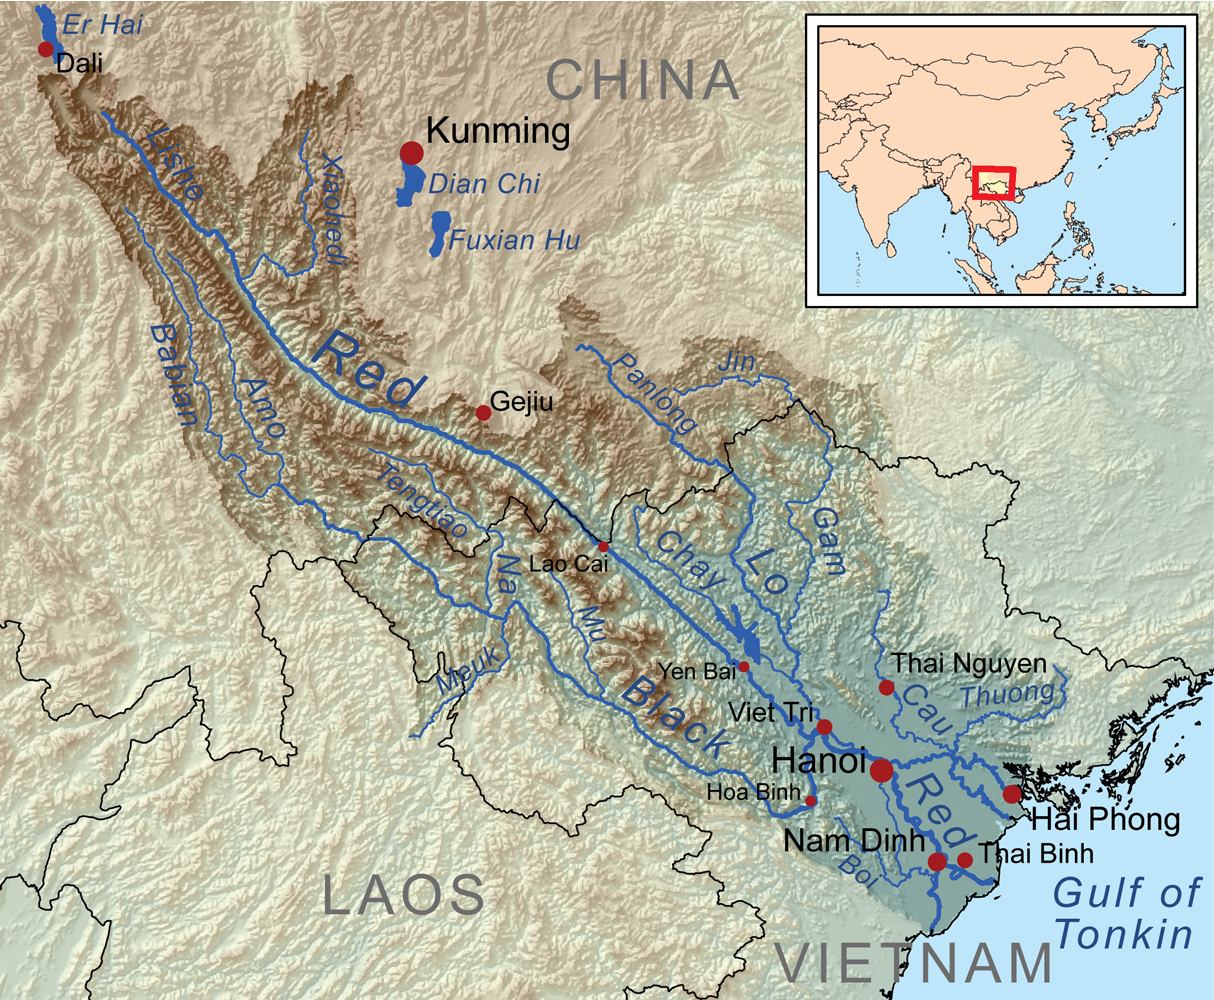 Map of China and Vietnam and the connection through Red River Delta By Kmusser CC BY-SA 3.0